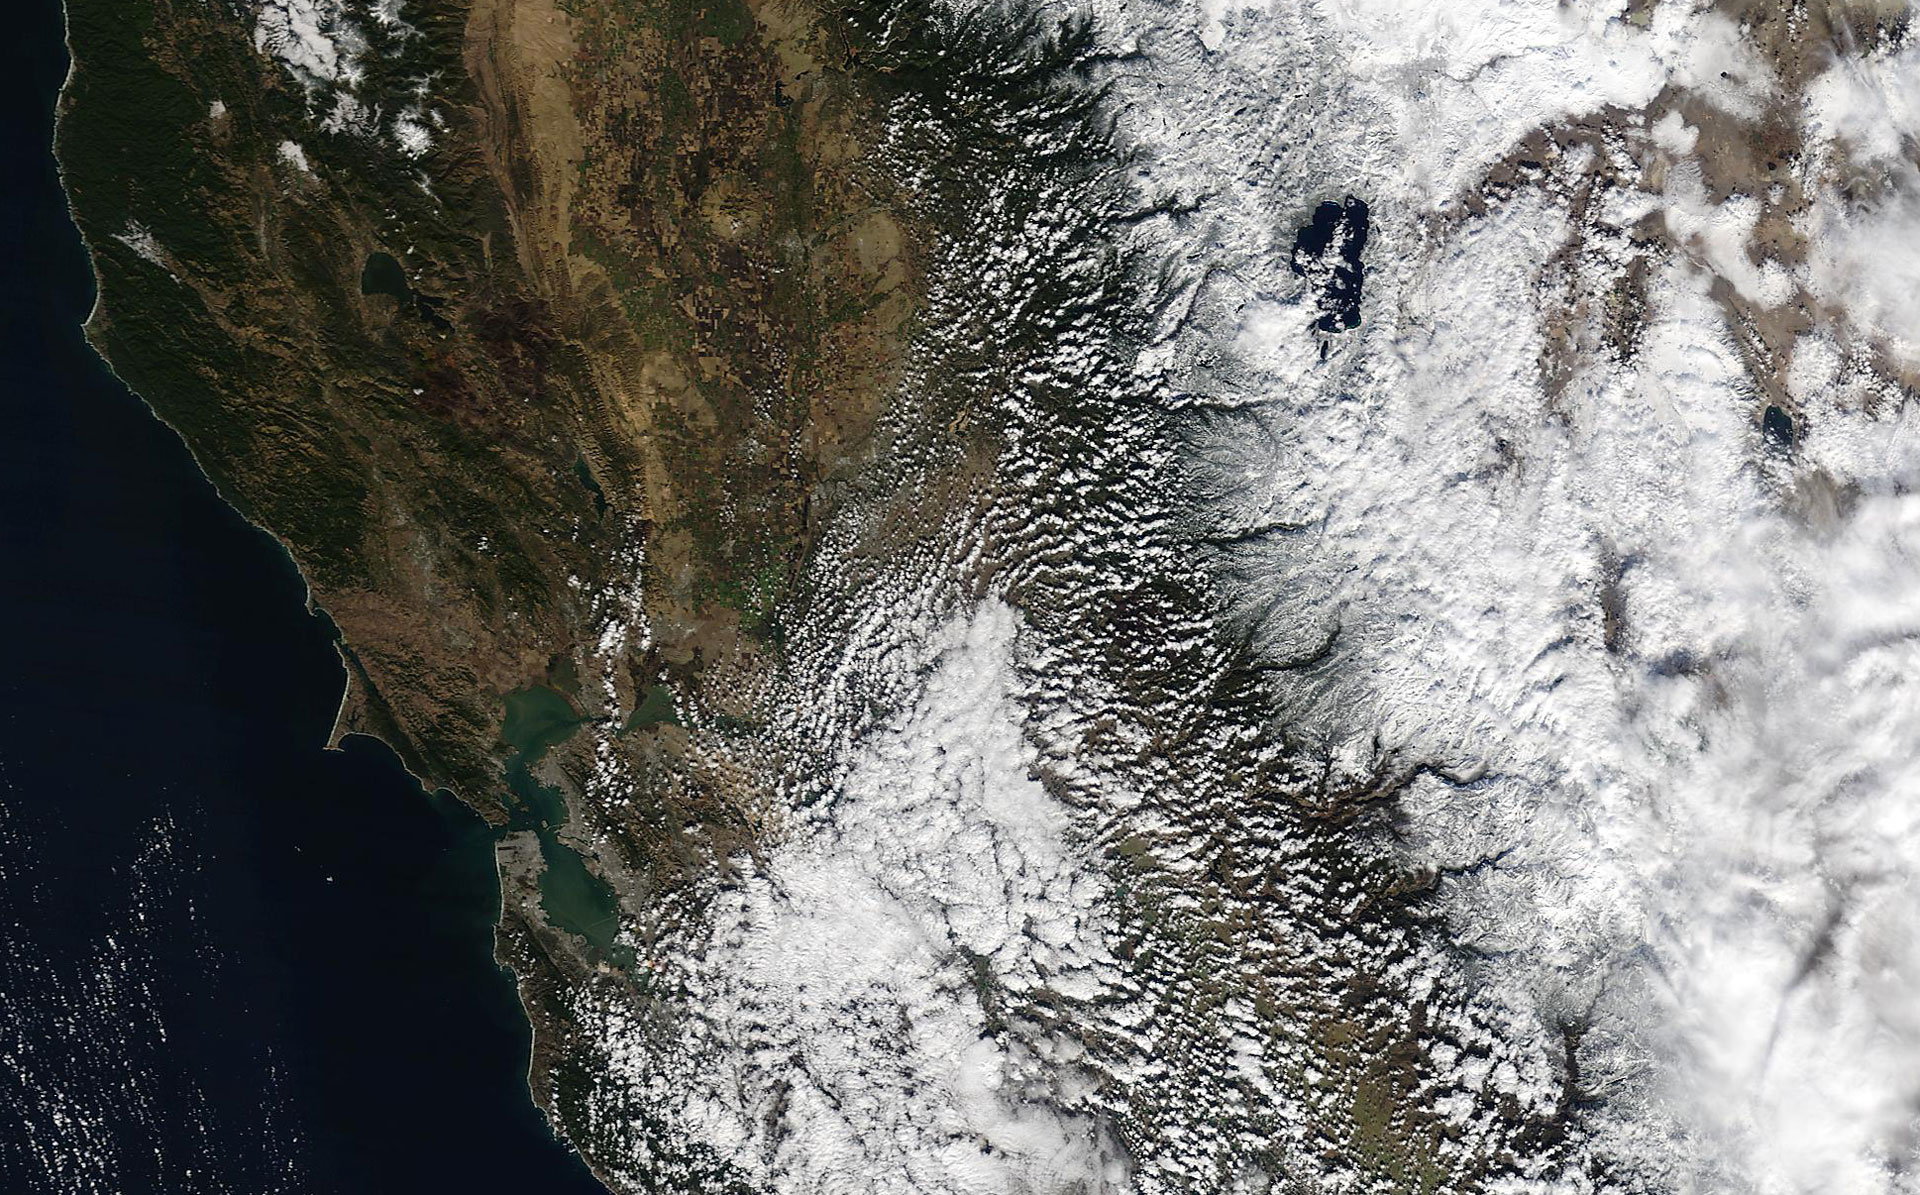 A hi-res image from NASA's MODIS satellite shows a fresh blanket of snow across the Central Sierra after Monday's storm. The Bay Area is visible in the lower-left. Lake Tahoe is in the upper-right.